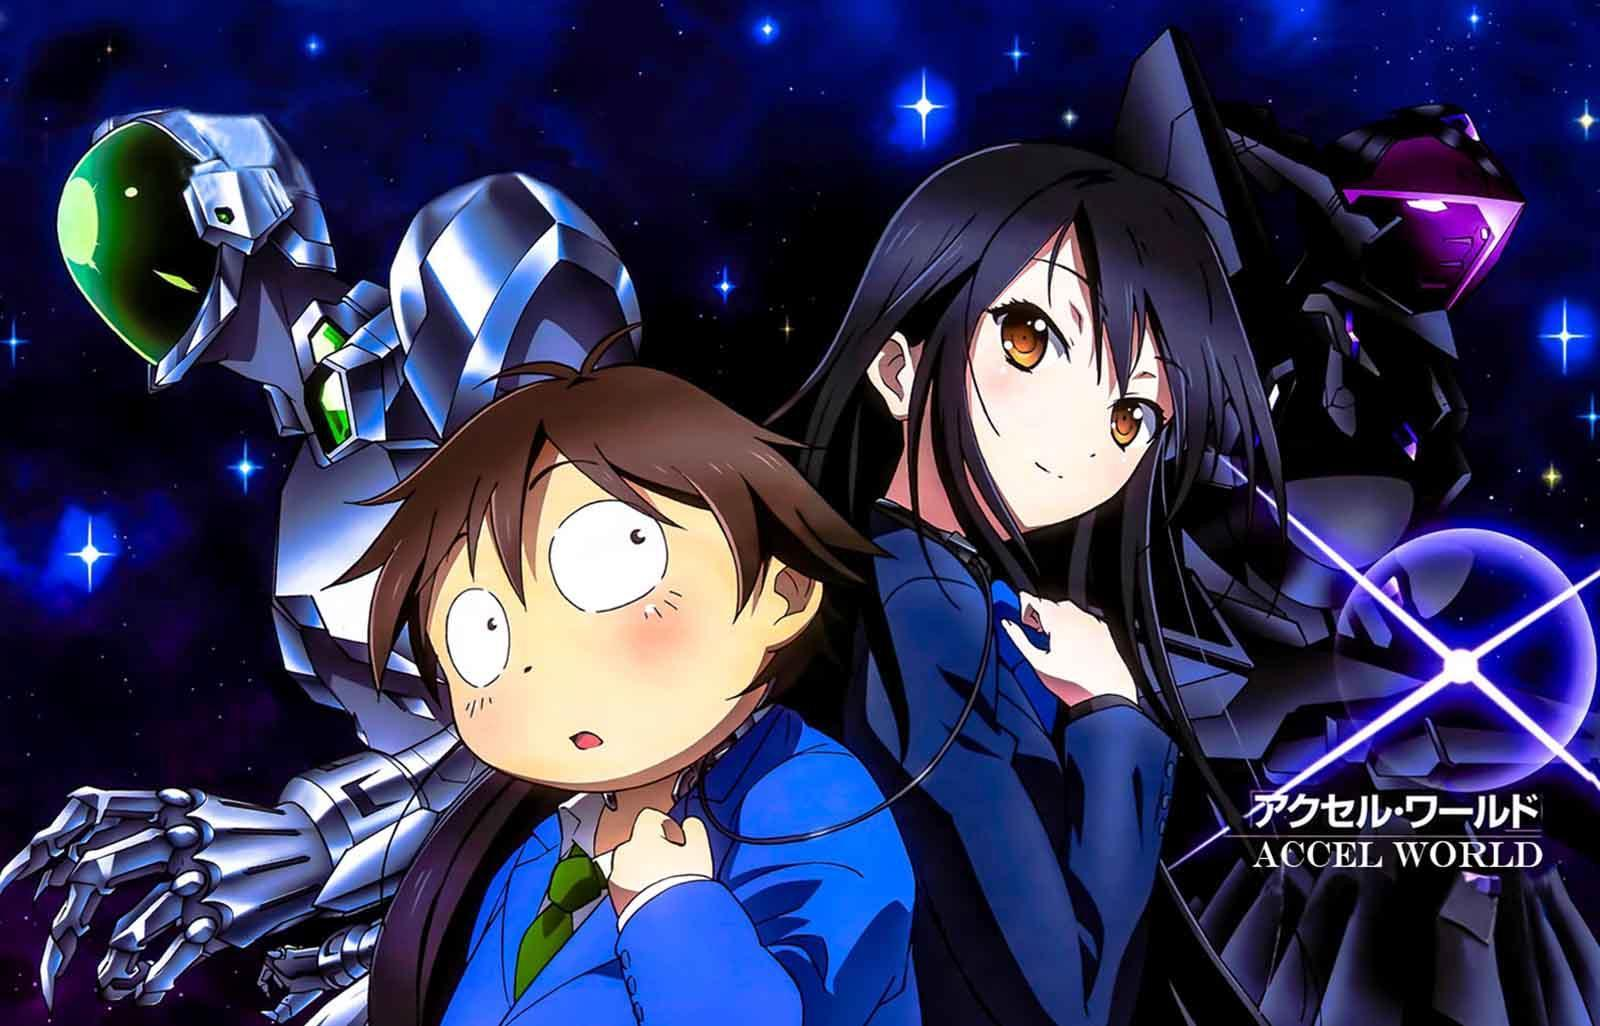 Accel World is a